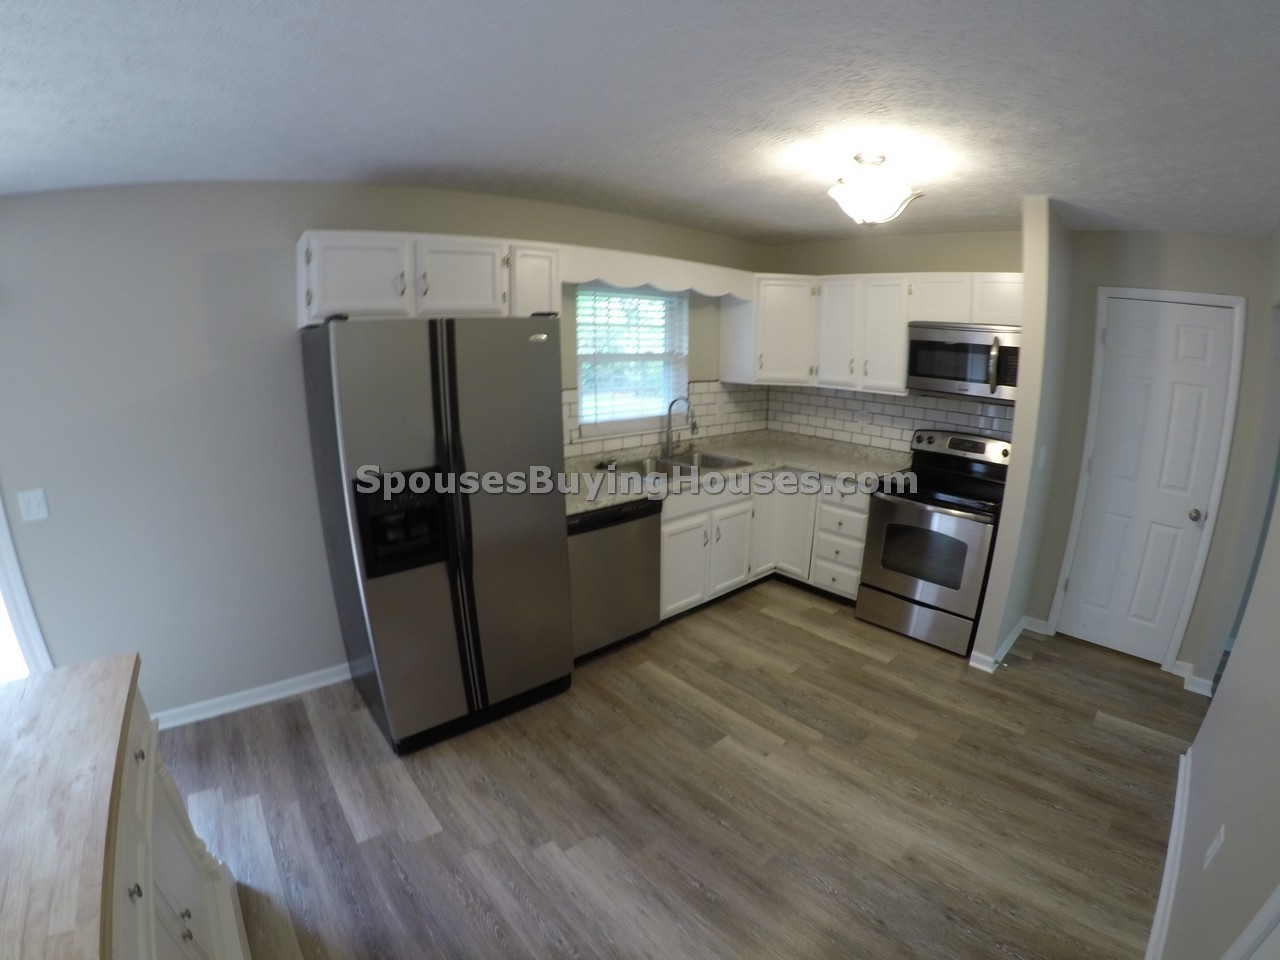 Sell Your House Fast Indianapolis Kitchen Appliances